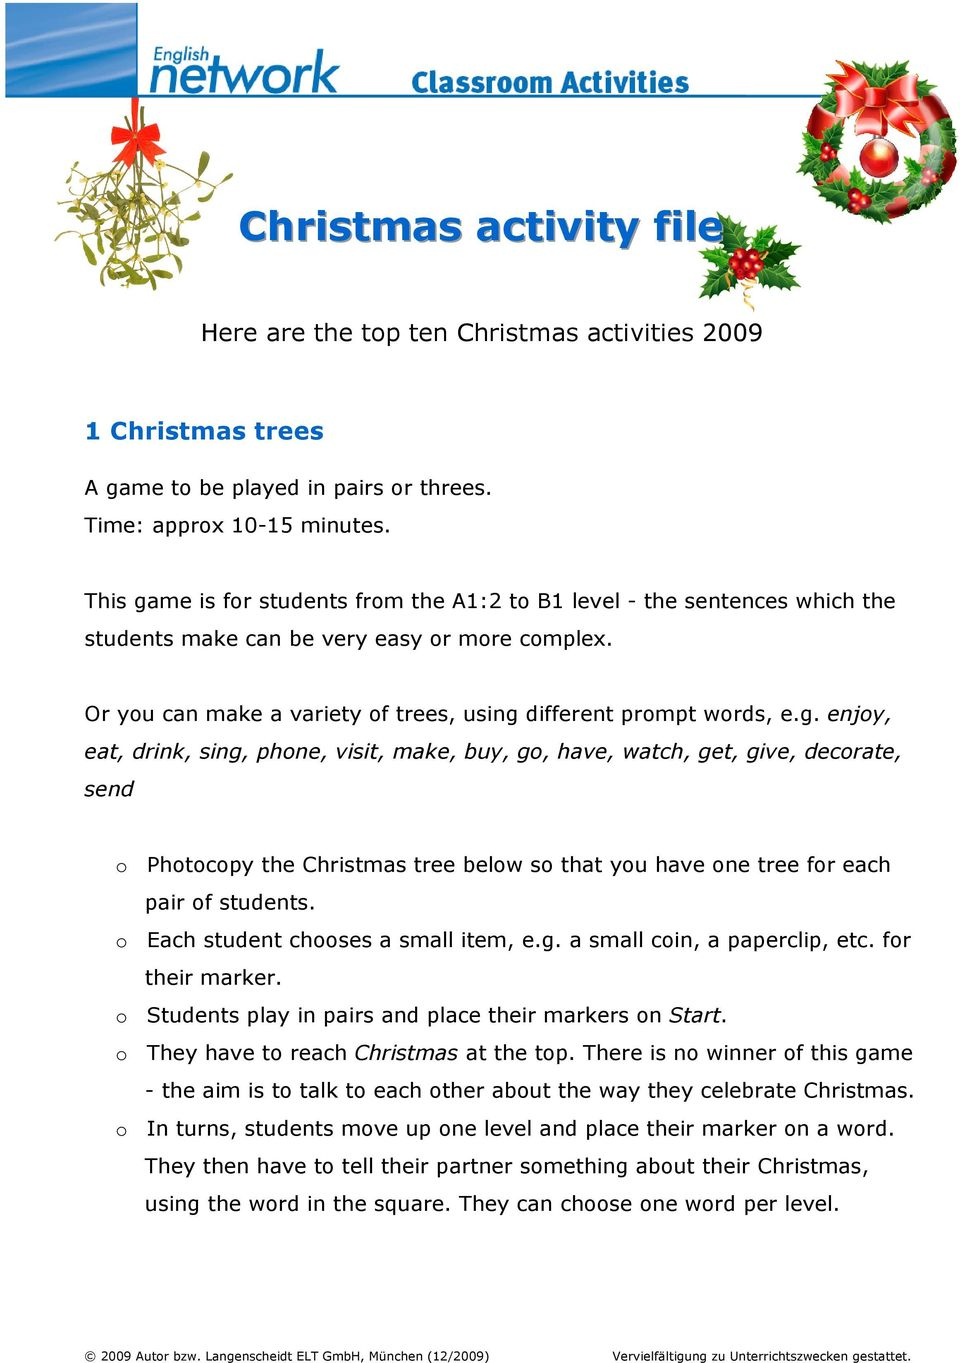 o Each student chooses a small item, e.g. a small coin, a paperclip, etc. for their marker. o Students play in pairs and place their markers on Start. o They have to reach Christmas at the top.